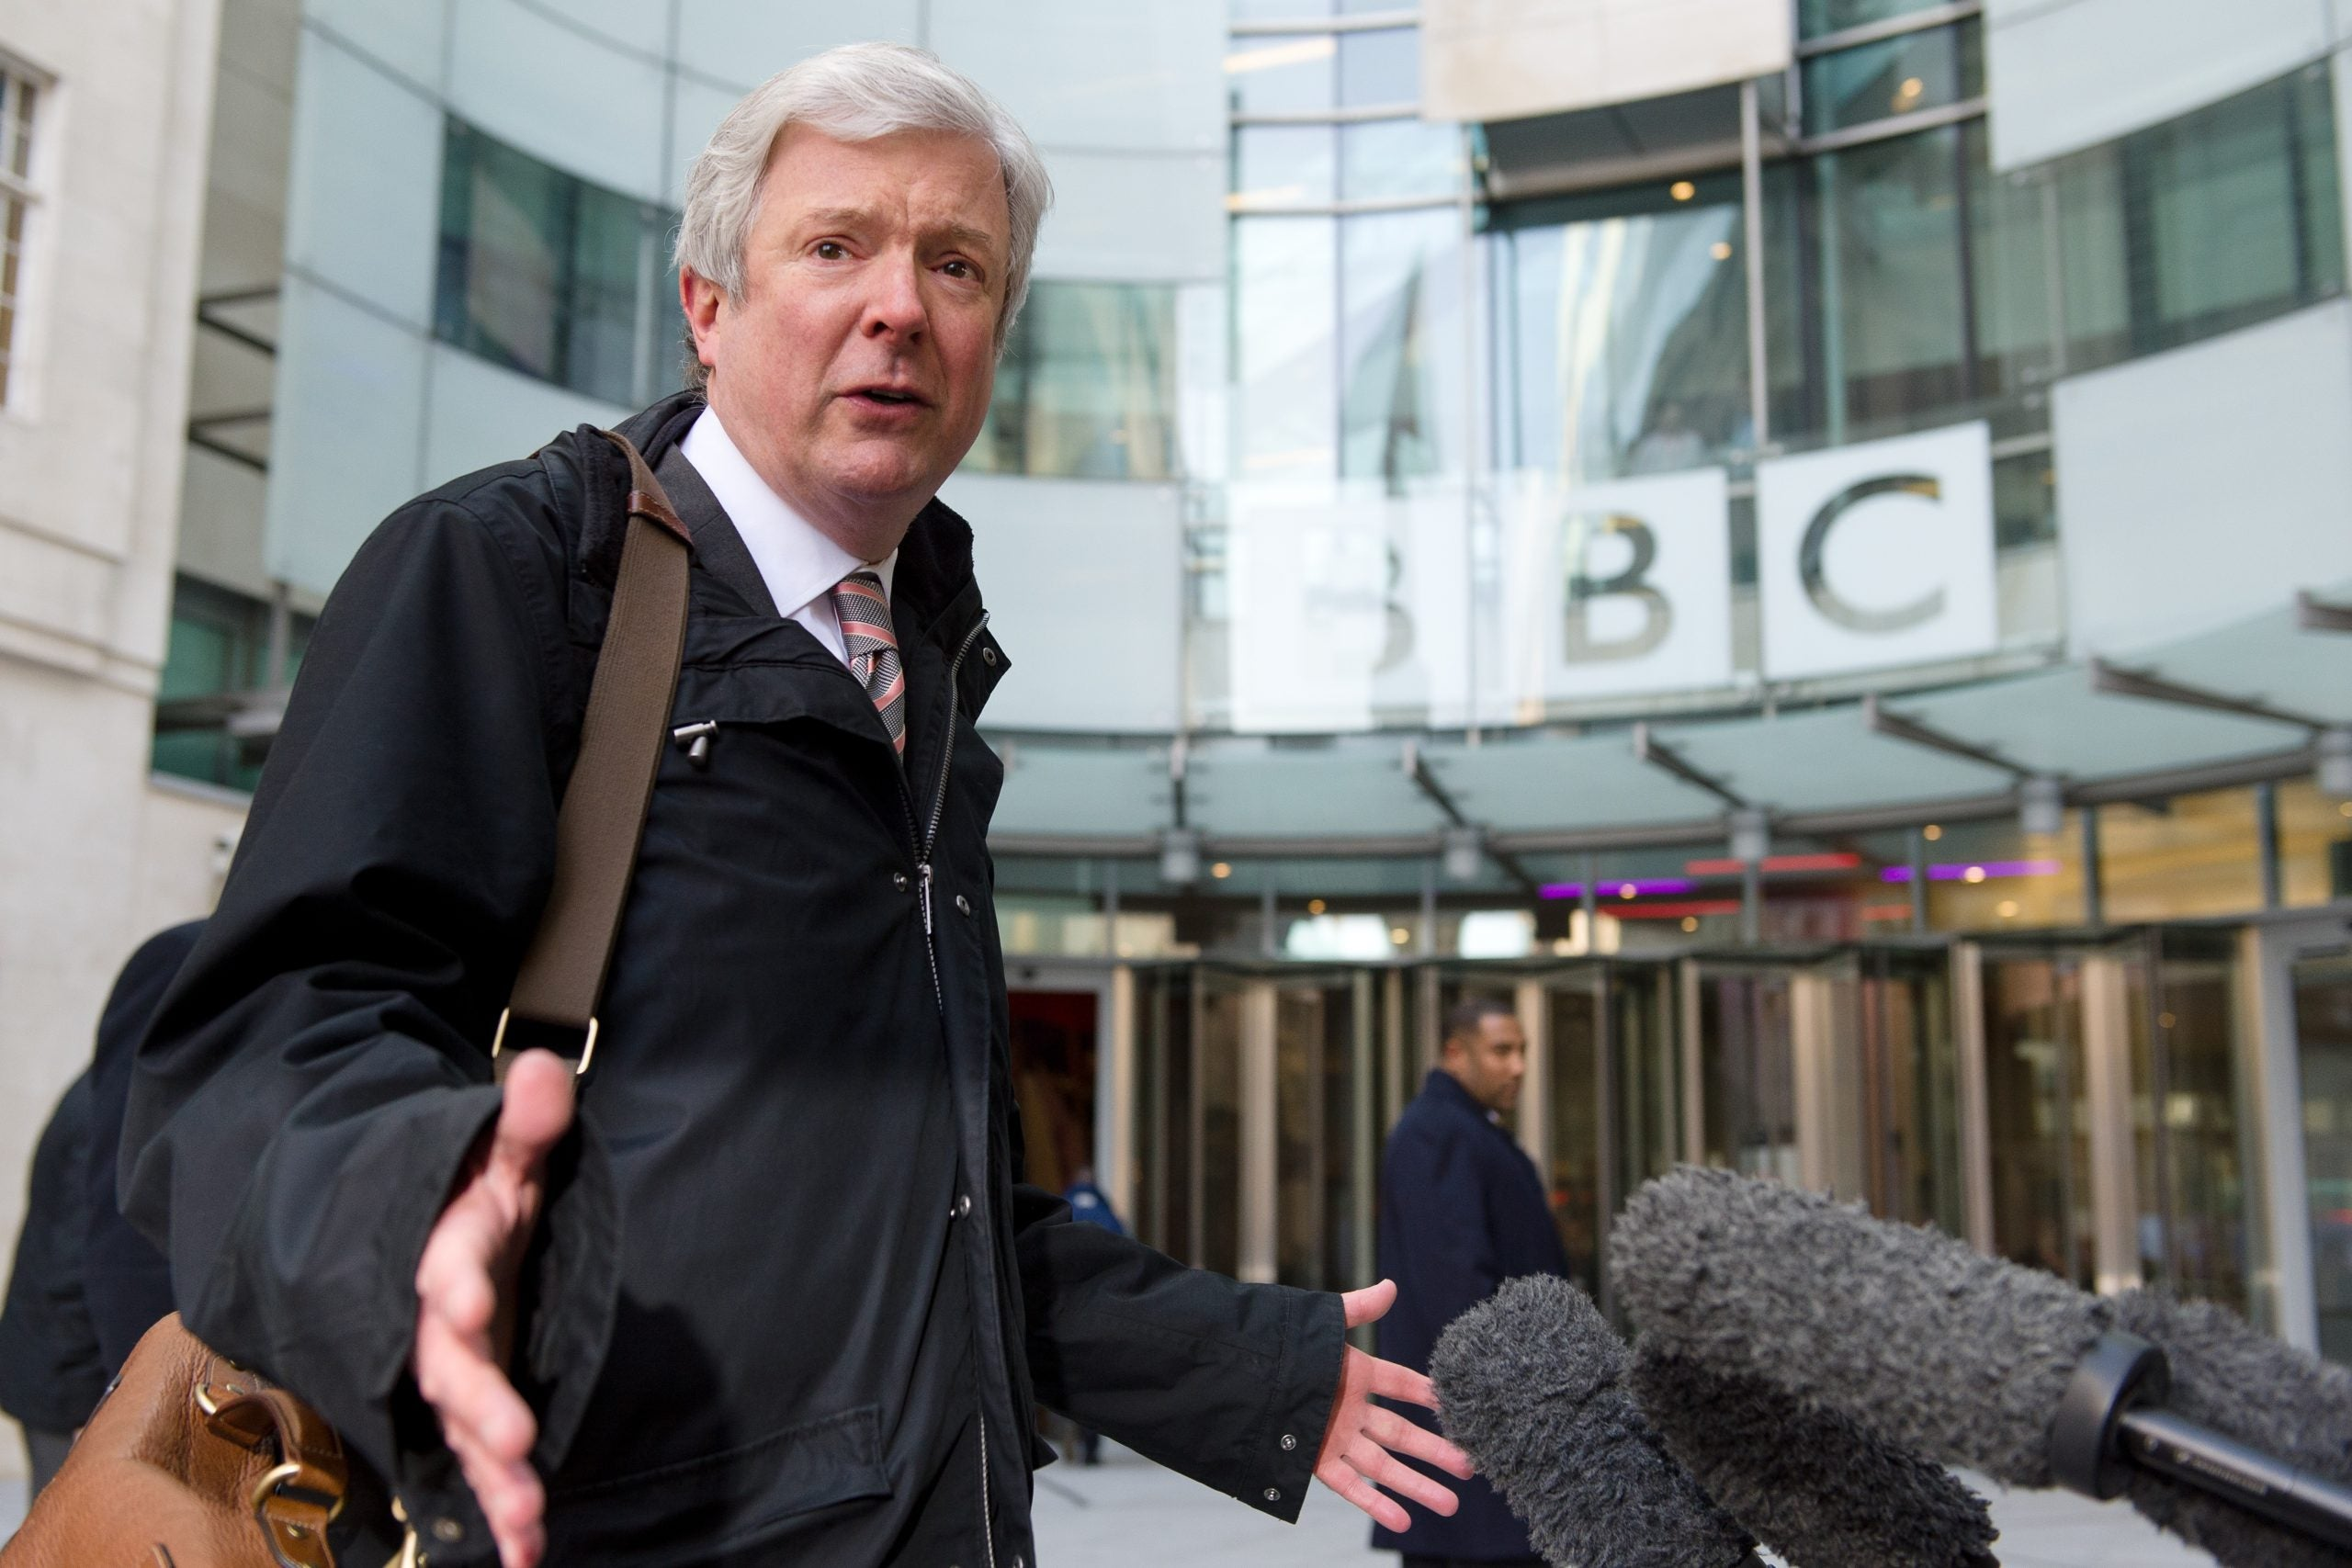 Tony Hall's successor as BBC director general faces a radically changed media landscape